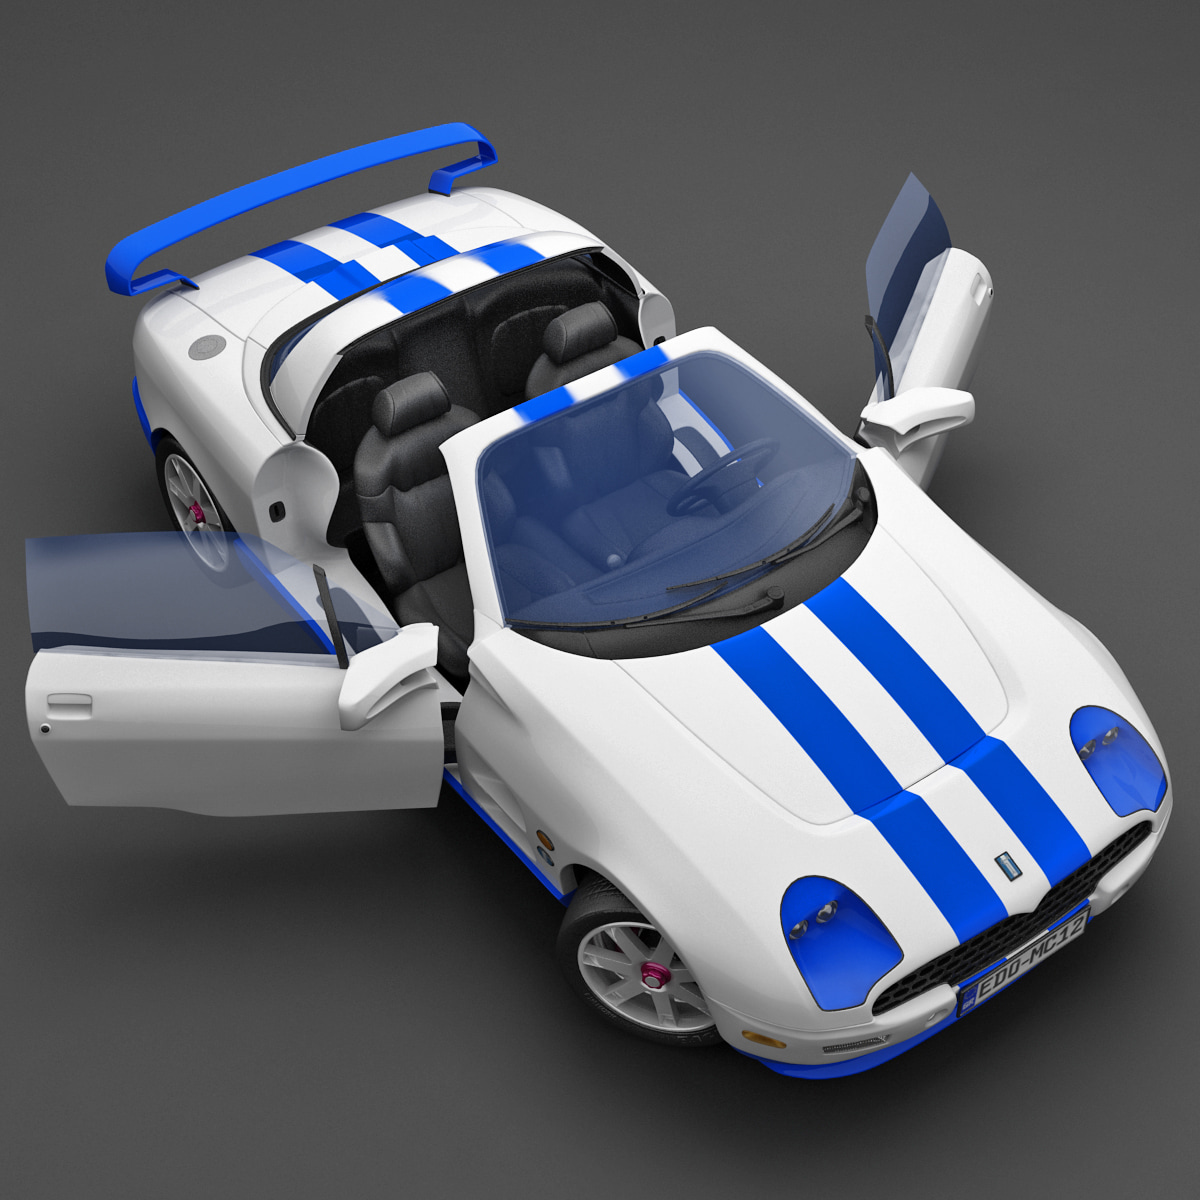 Sports_Car_De_Tomaso_Bigua_Tunned_V2_rigged_0001.jpg